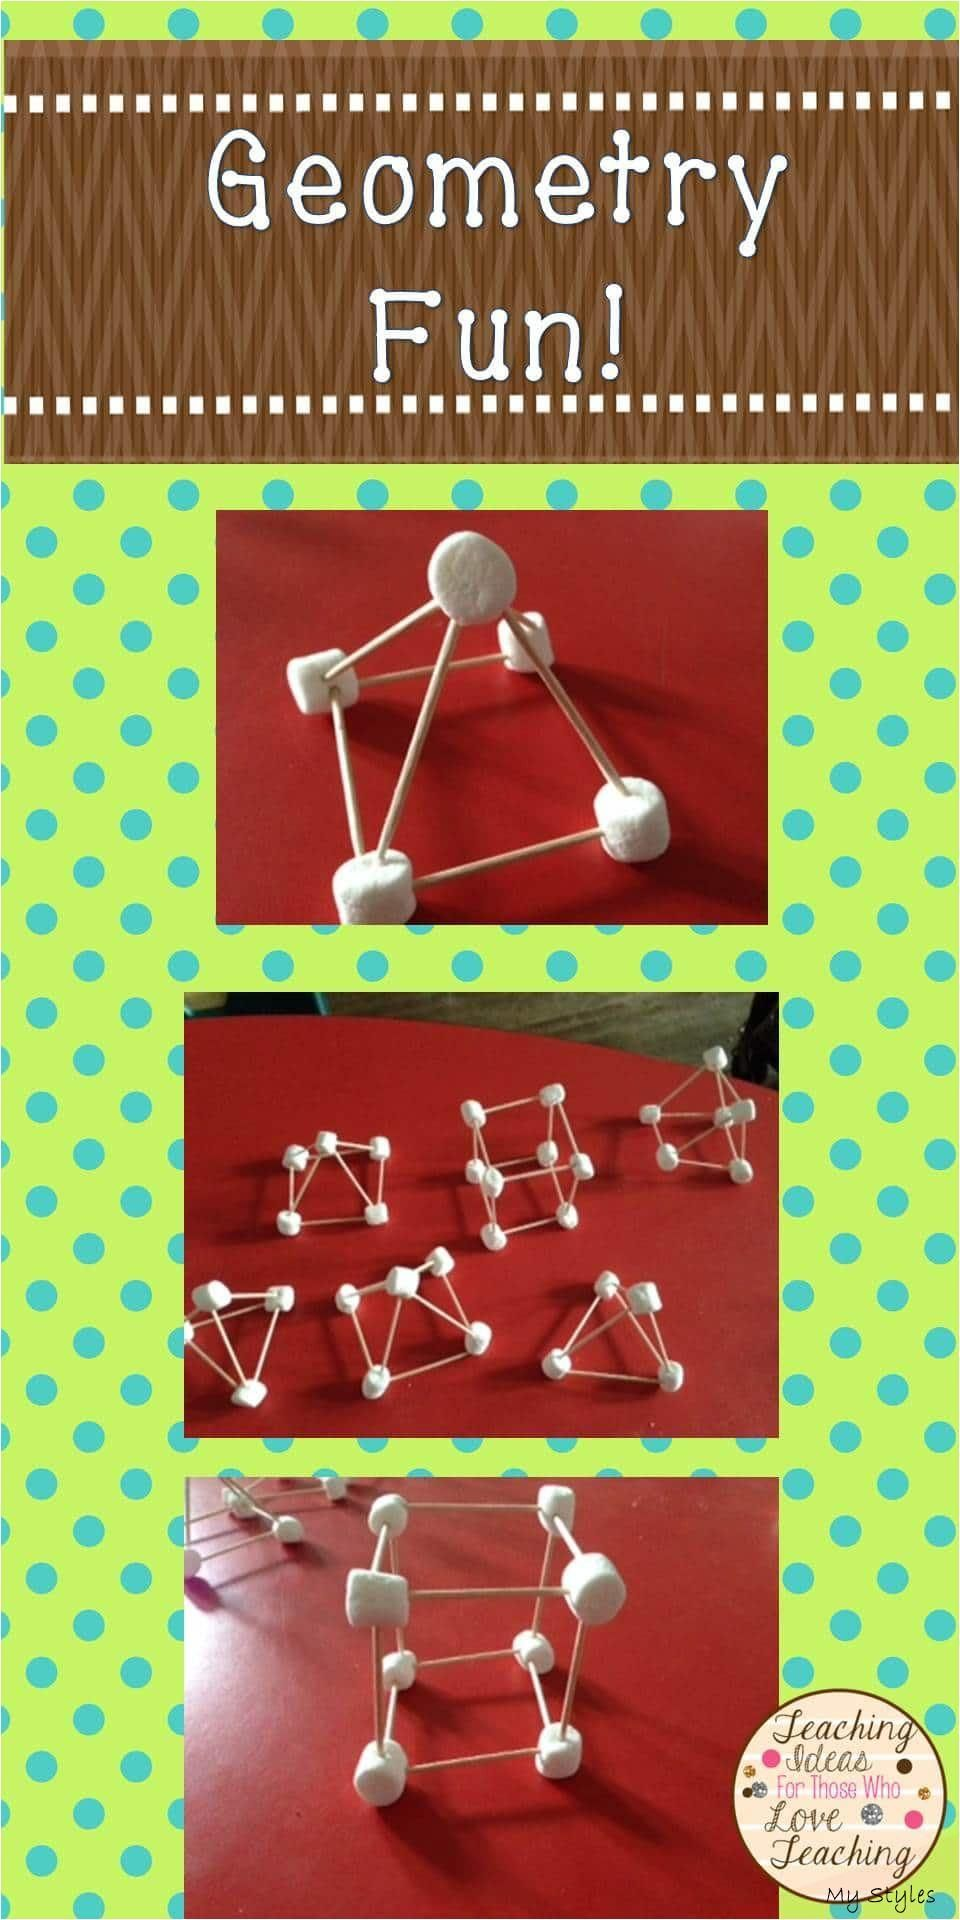 Mar 11, 2020 Geometry fun for your class as they create